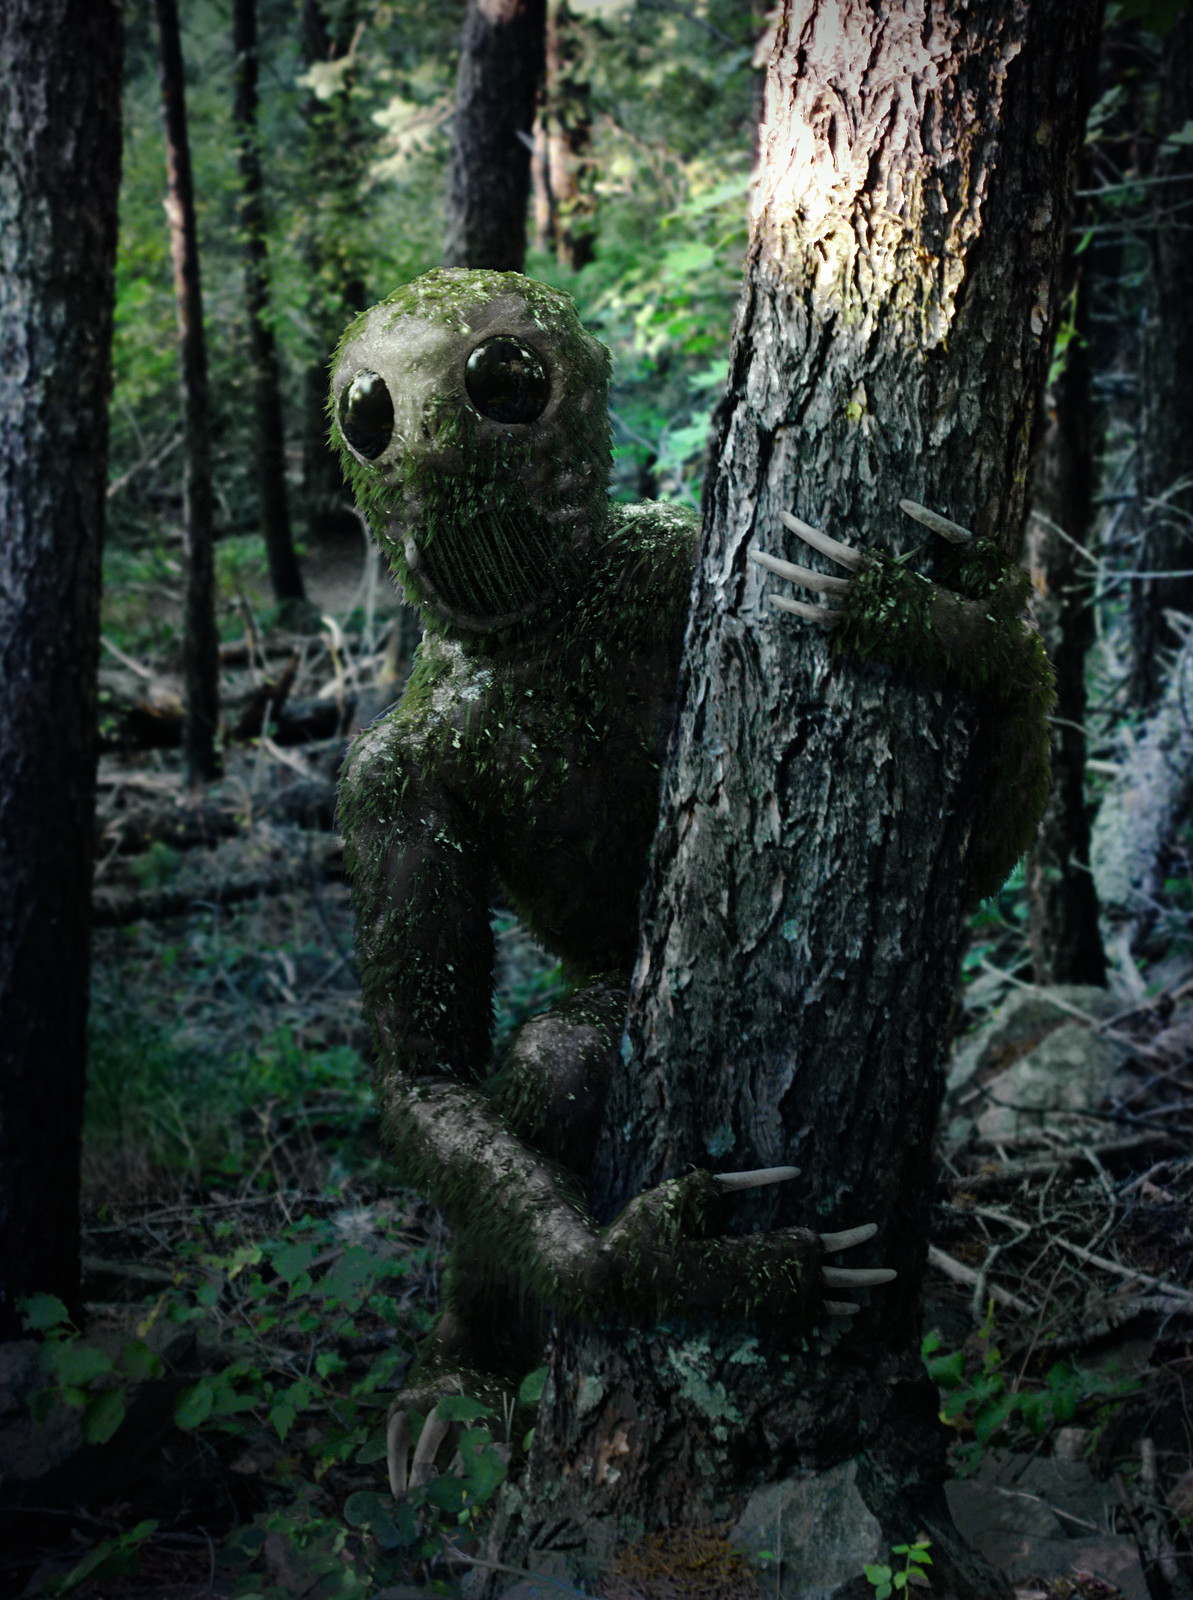 Forest Creature II